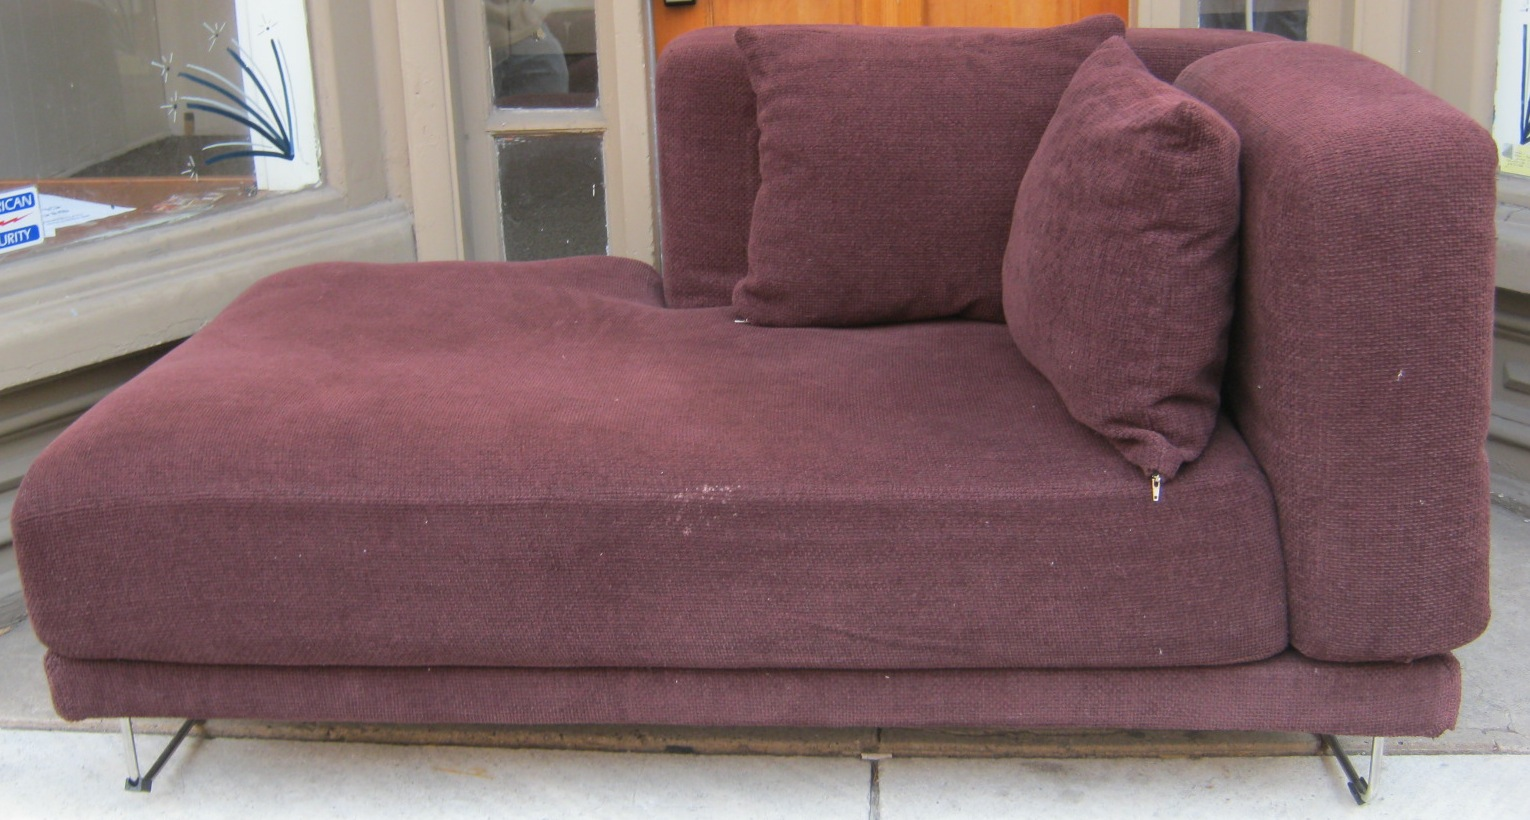 Ikea Tylosand Sofa Cheap Camper Sofas Uhuru Furniture And Collectibles Sectional Sold